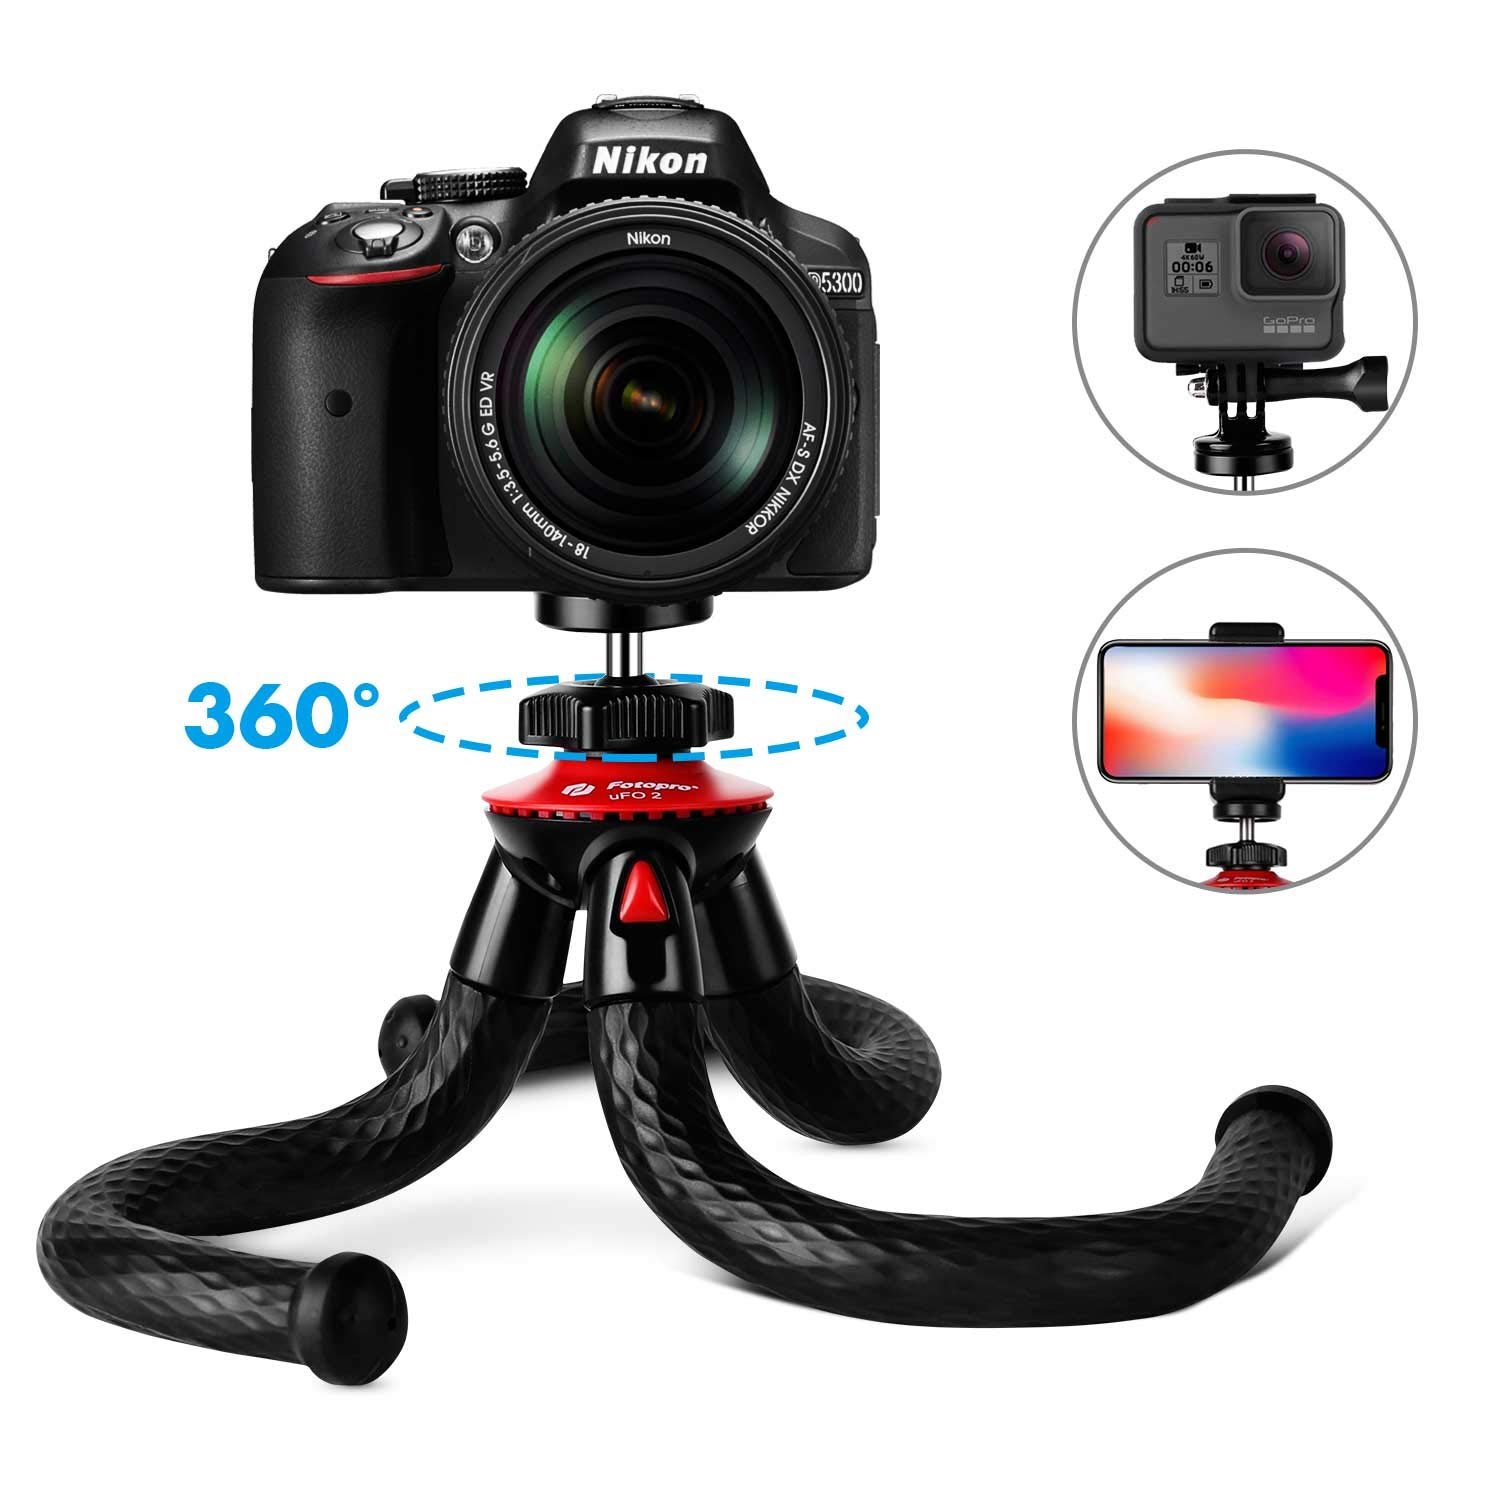 Tripods for Phone, Fotopro 12'' Flexible Tripod with Bluetooth for iPhone X 8 Plus,Samsung S9,Waterproof and Anti-Crack Camera Tripod for GoPro,360 Degree Spherical Camera for Time-Lapse Photography by Fotopro